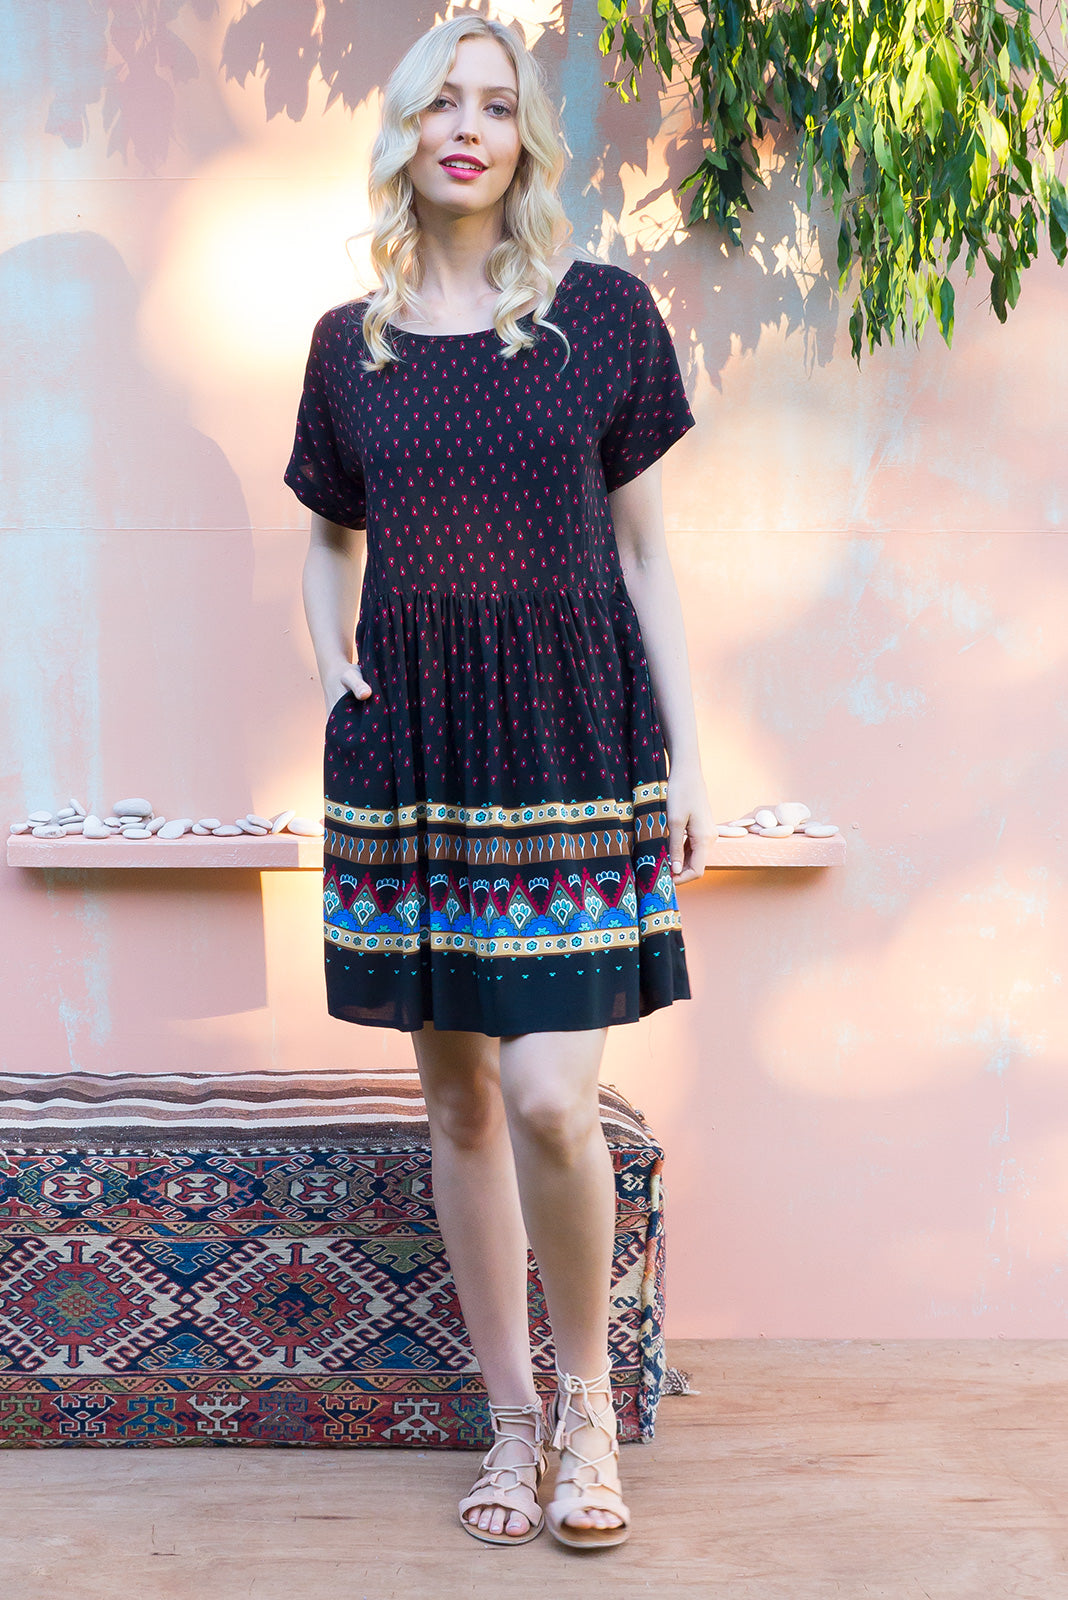 Blue Moon Inca Black Dress has a easy to wear relaxed fit and features cuffed sleeves, button tabs at the waist and comes in a gorgeous black based Incan inspired border print on woven rayon